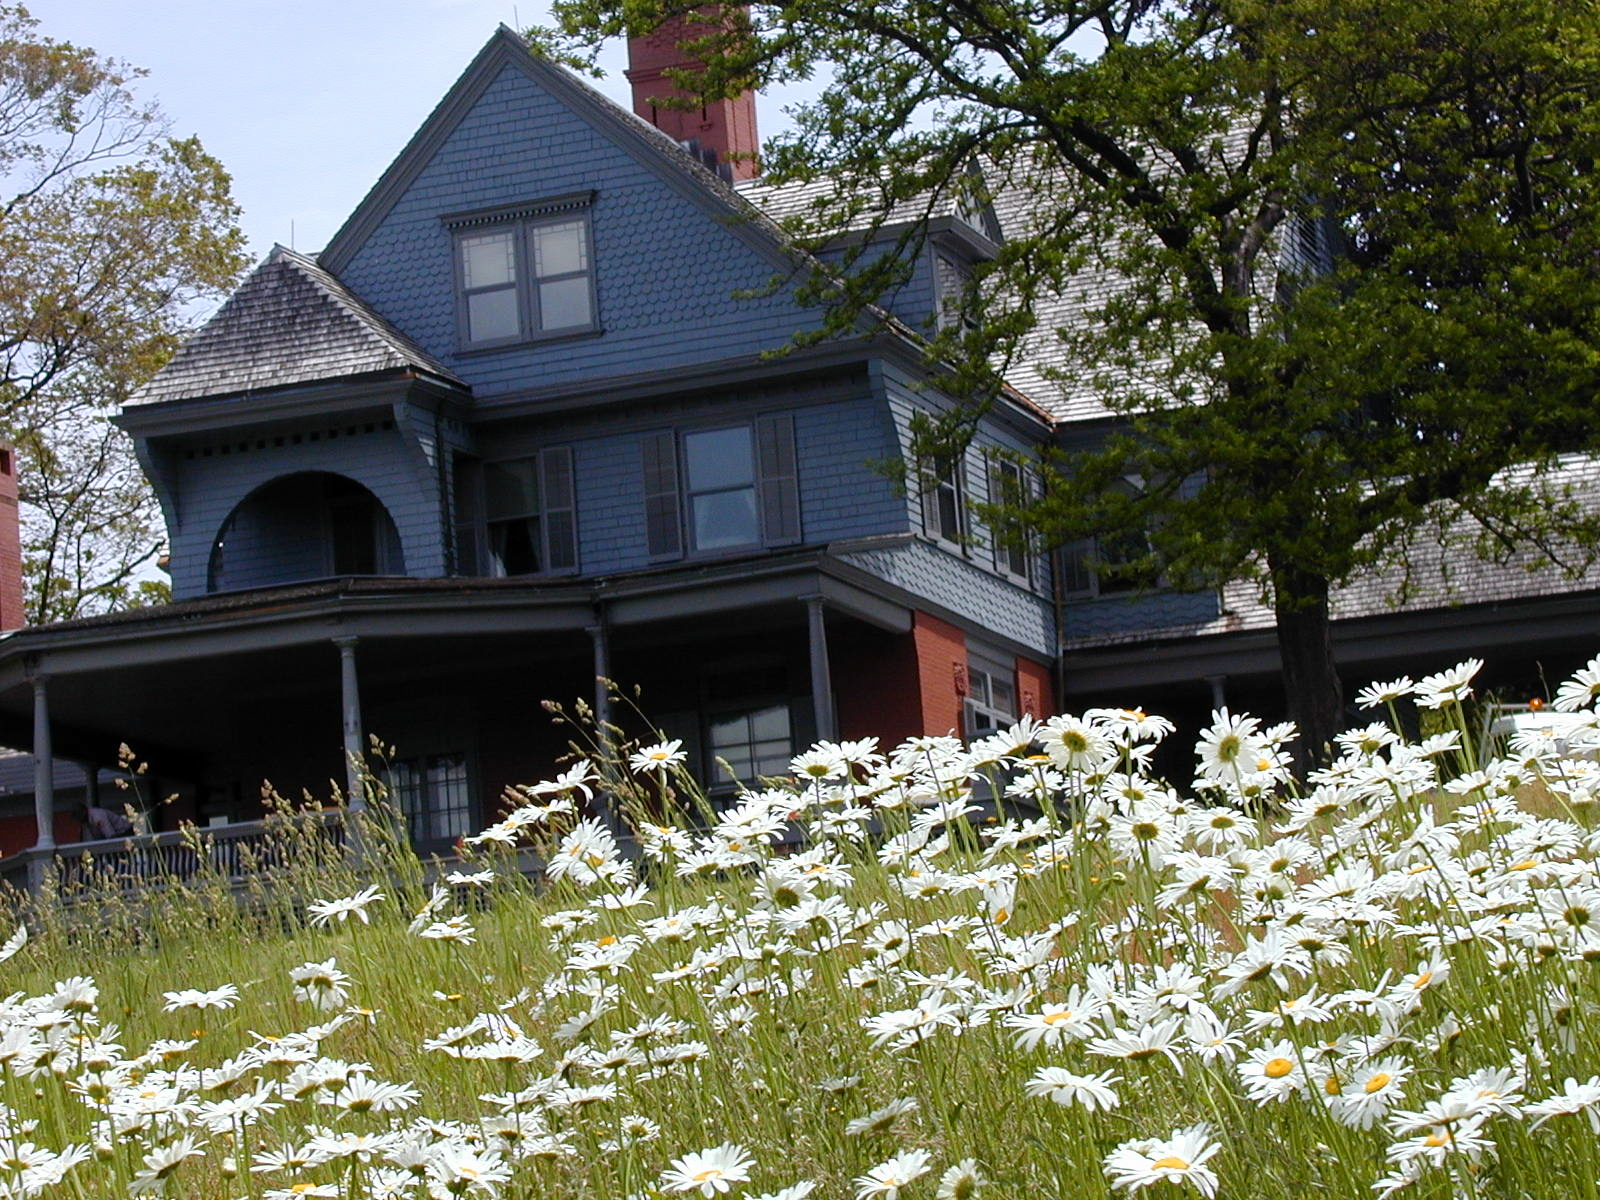 Daisies growing in front of Sagamore Hill.